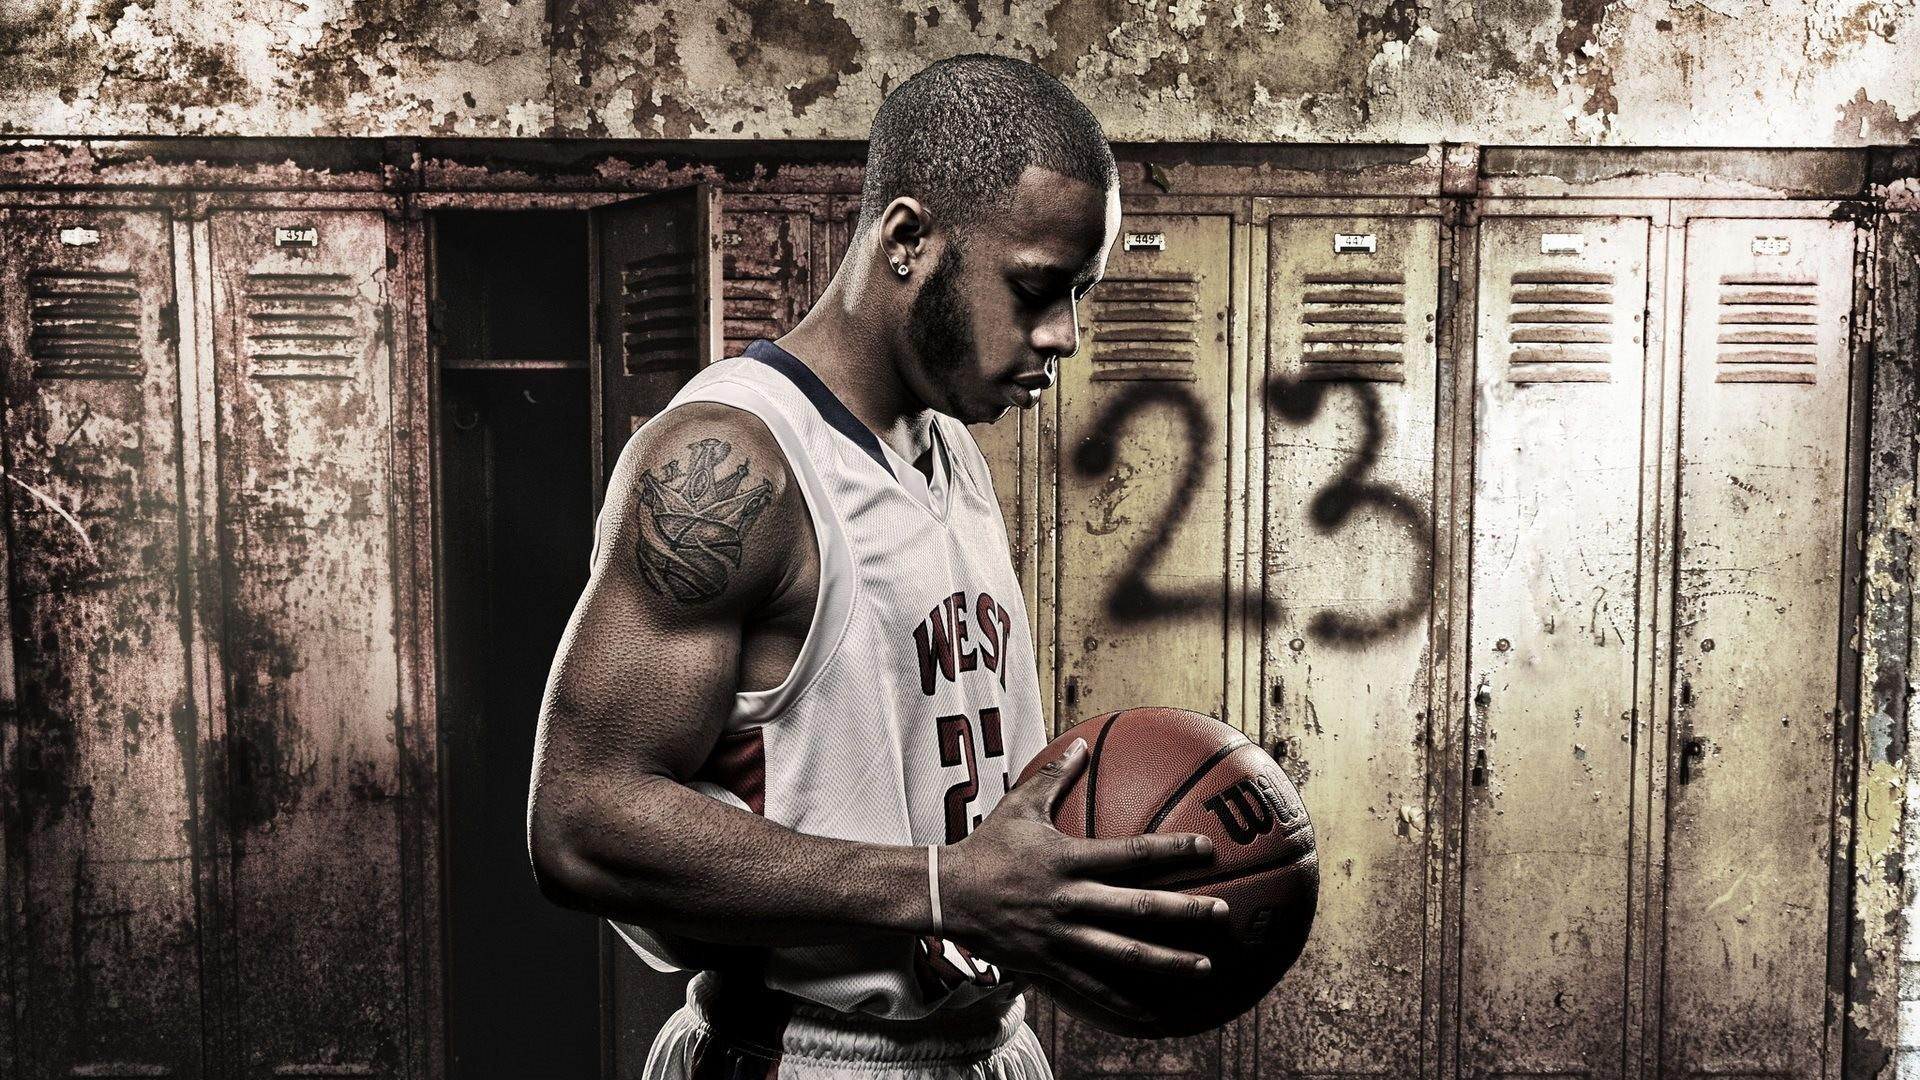 Bassketball Terrance Hall Background